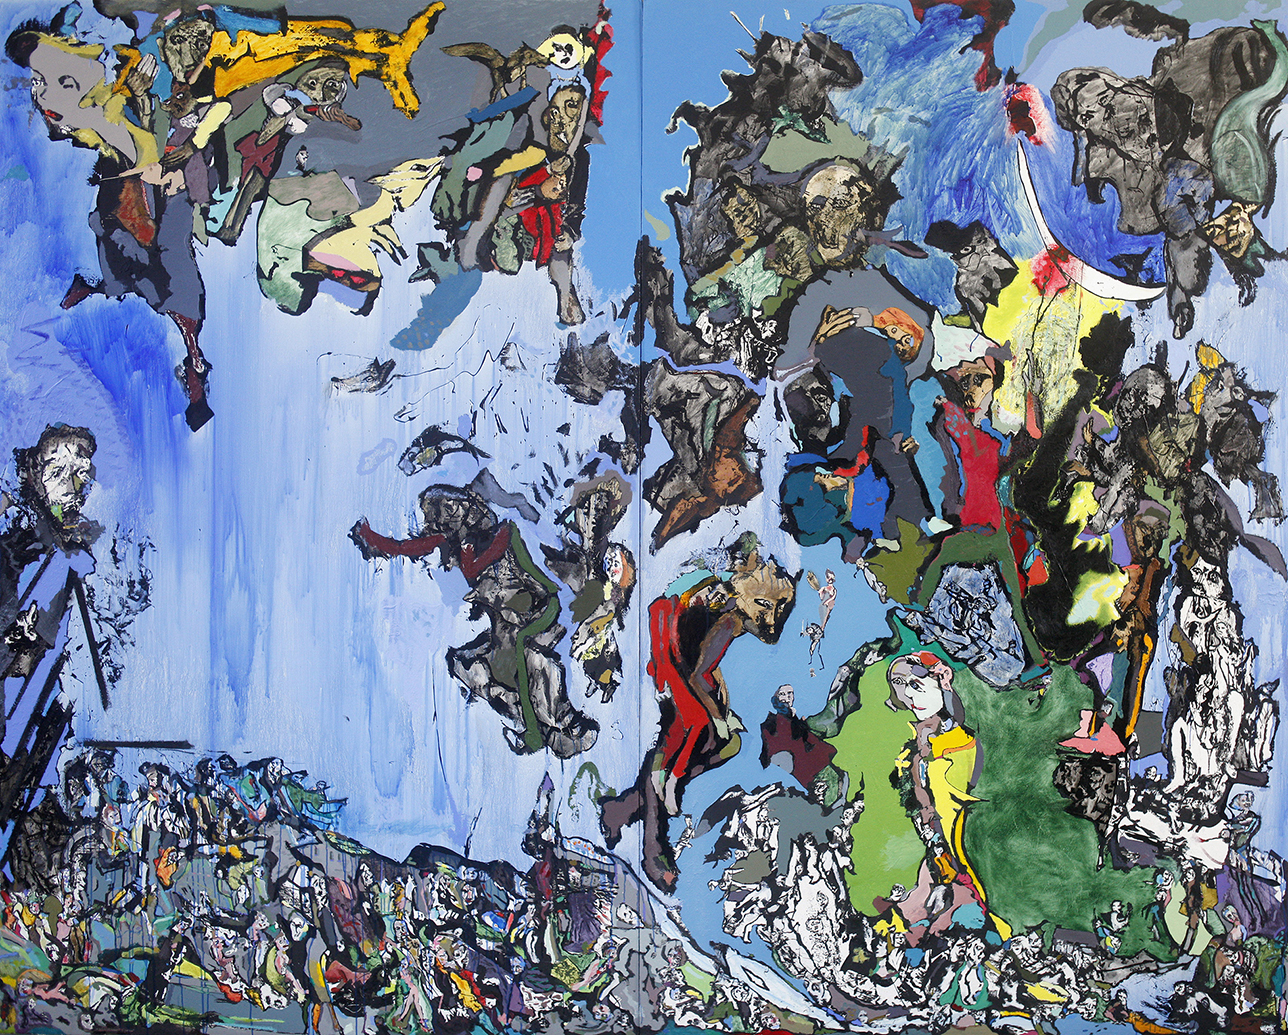 An Attempt at the Last Judgement, 2014, oil on cardboard, 244 x 305 cm / 96.1 x 120.1 in